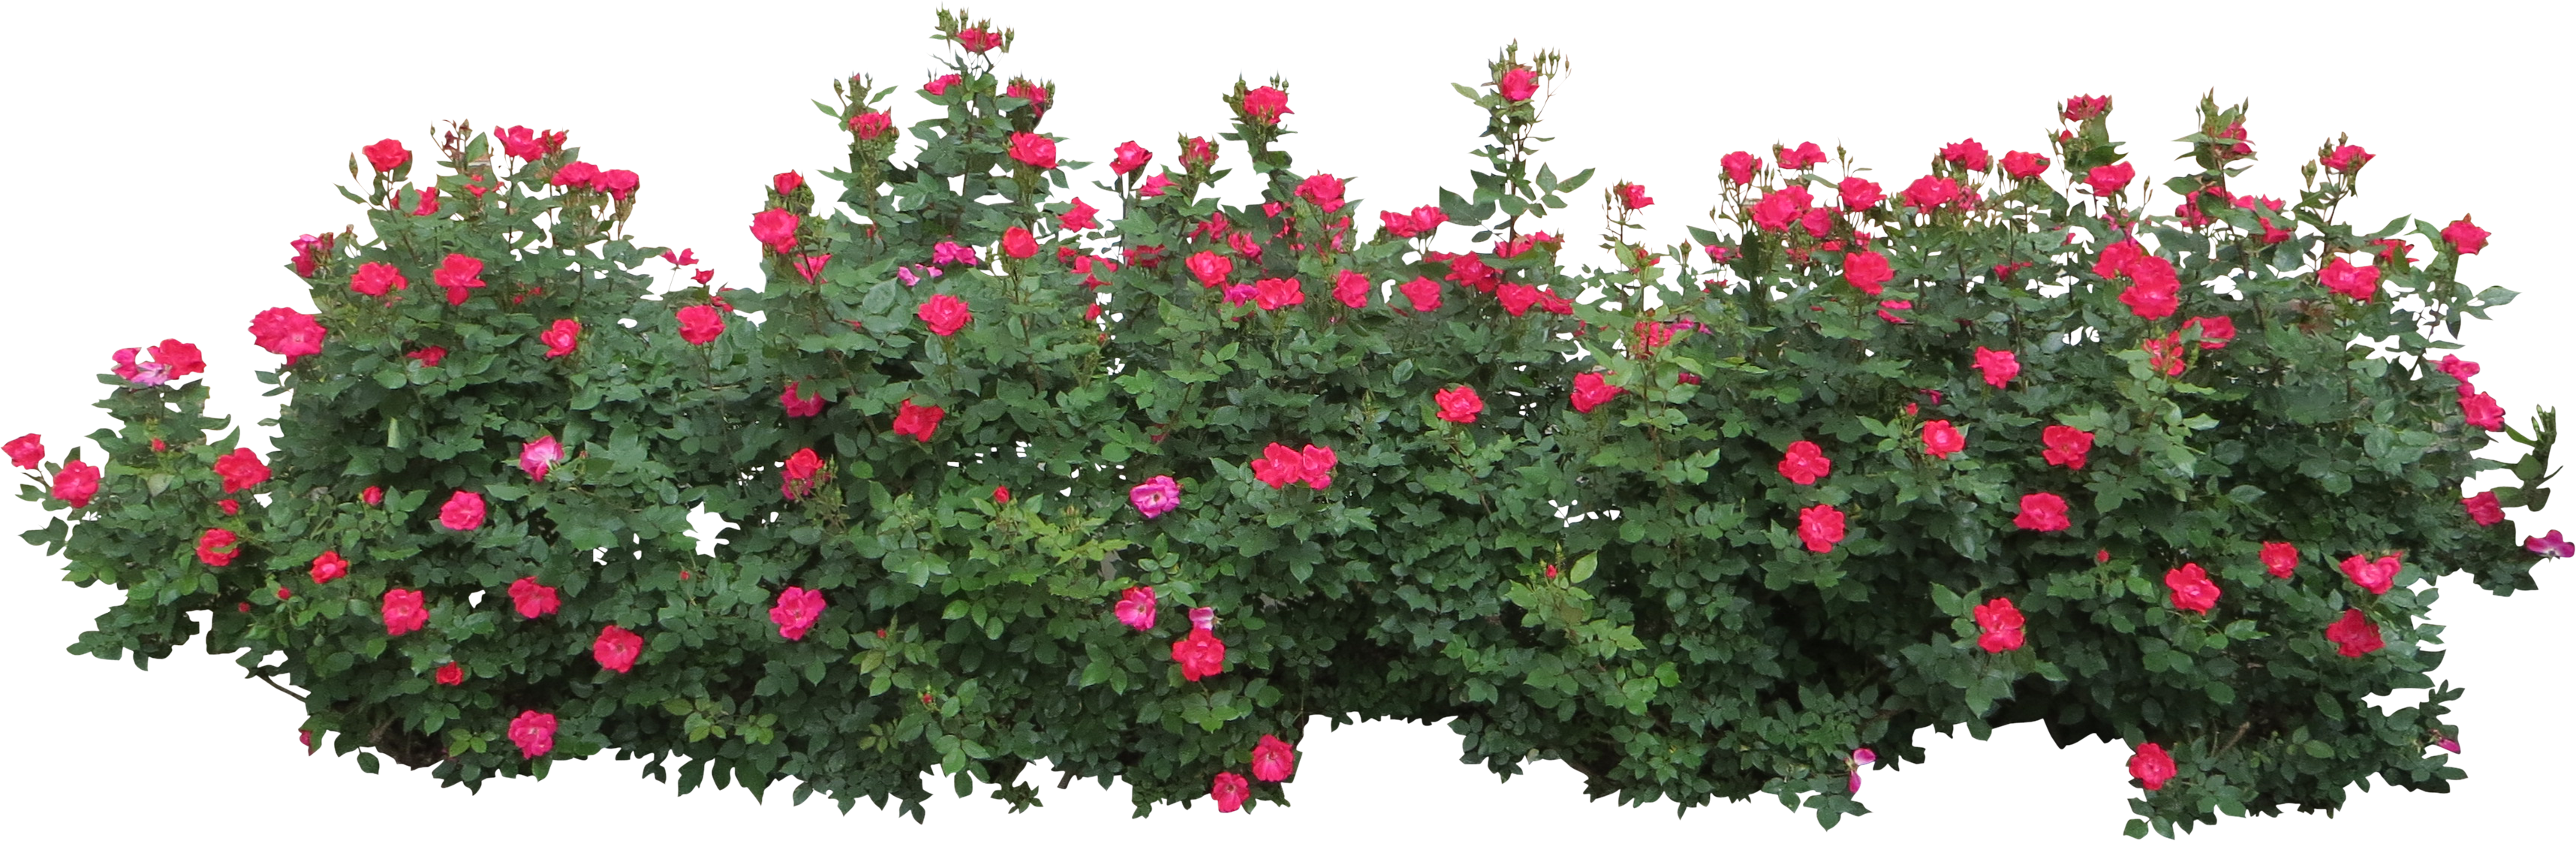 Bushes PNG images free download, bush PNG.